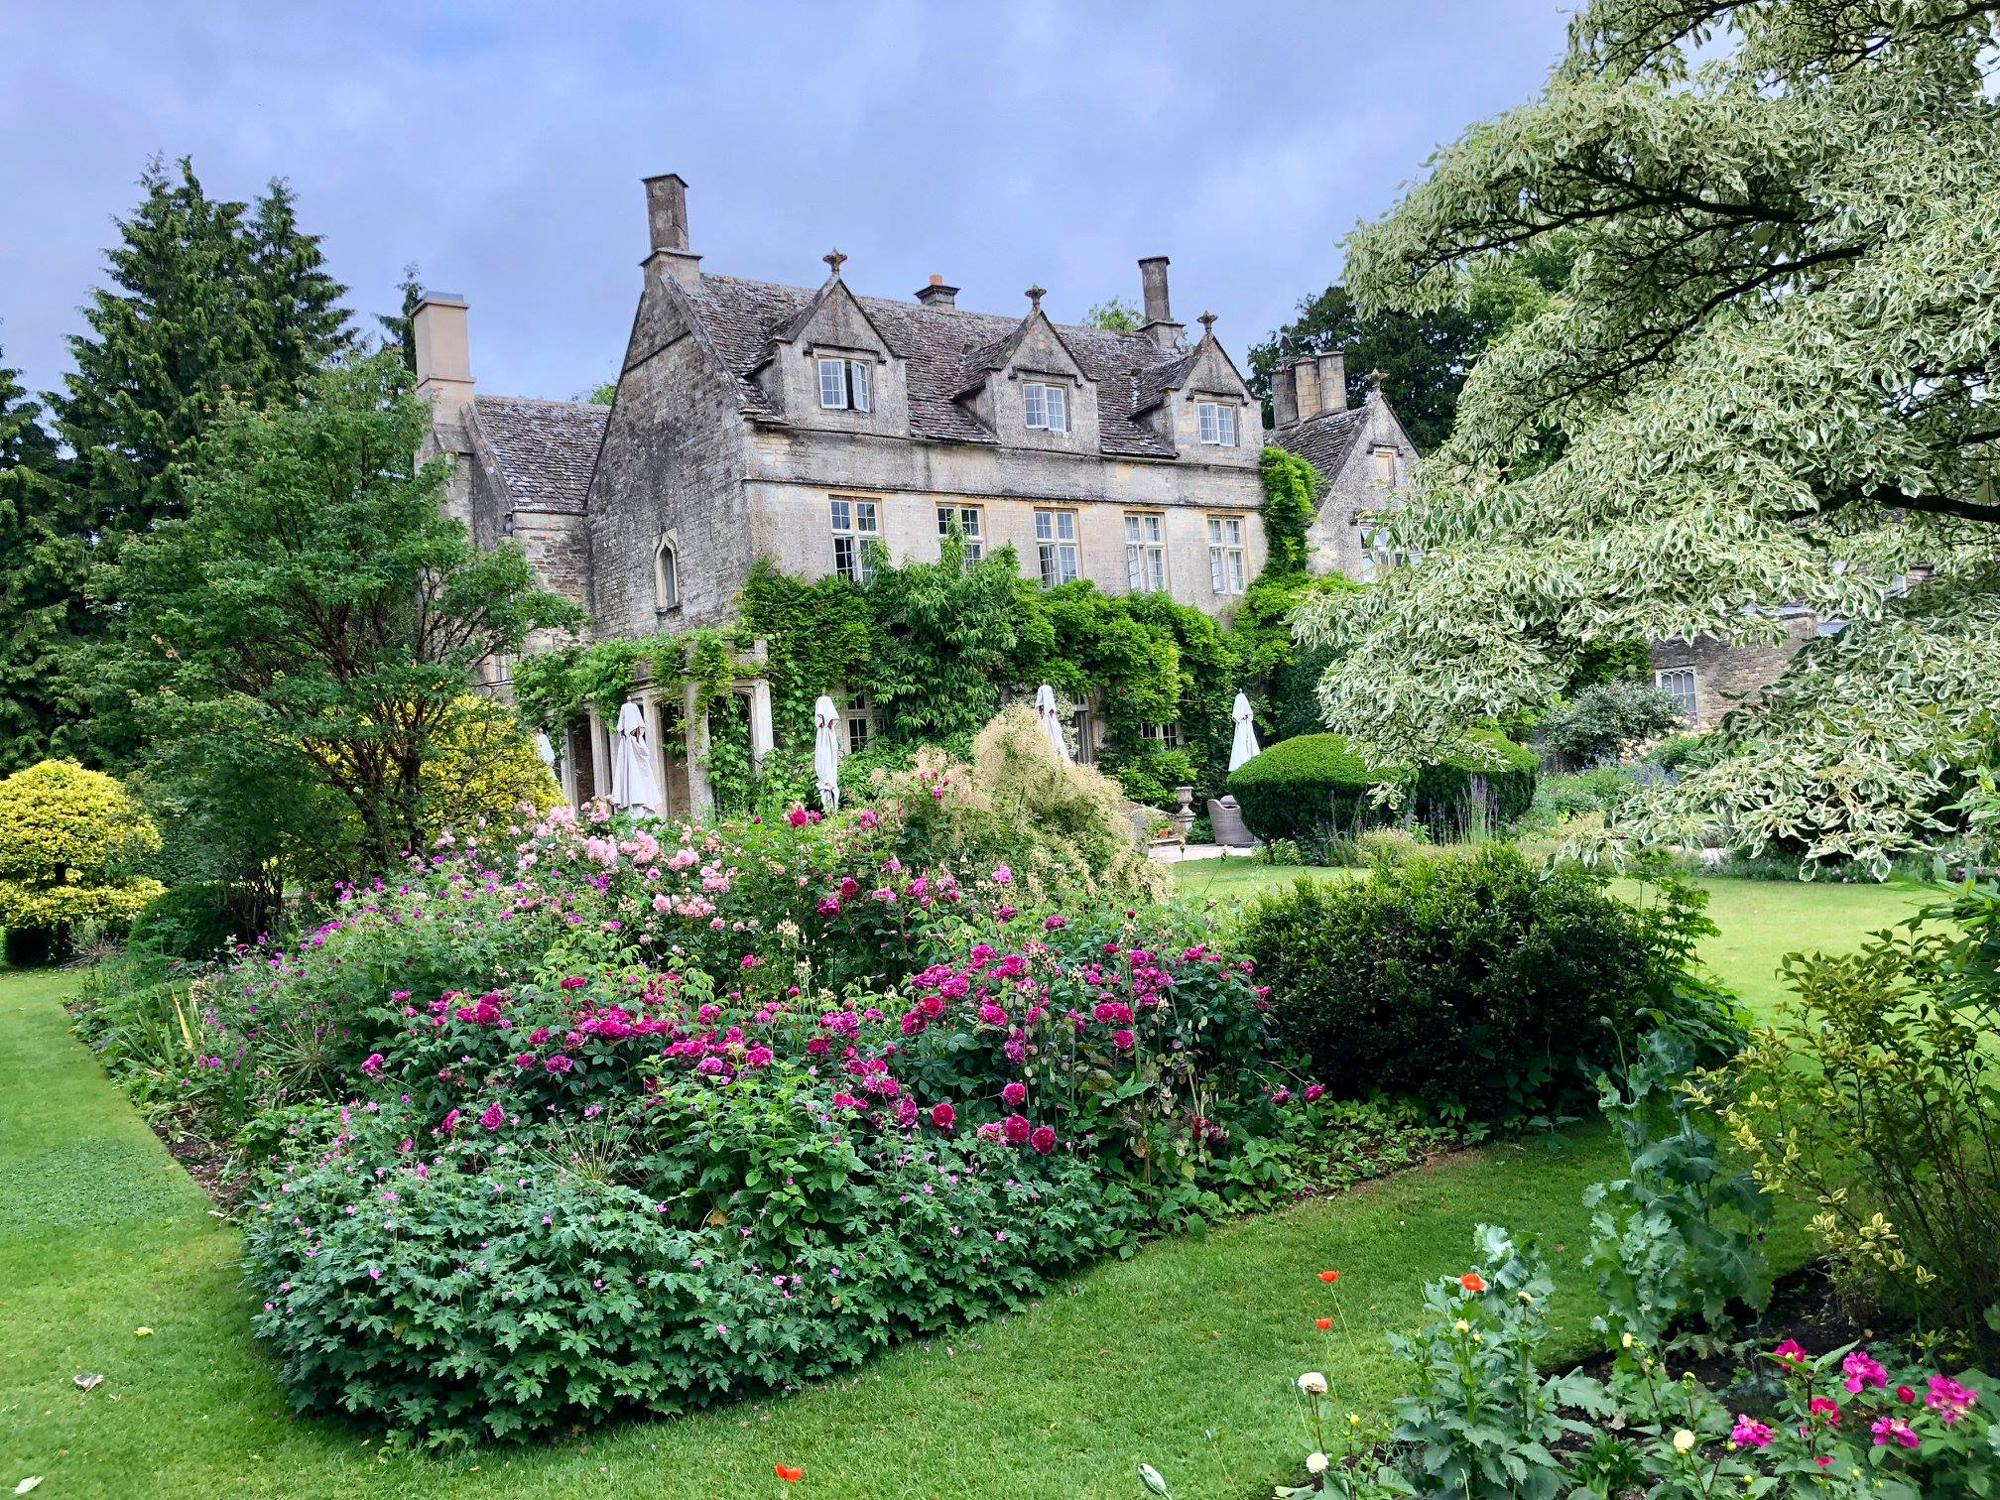 Hotels in Cirencester holidays at Cool Places